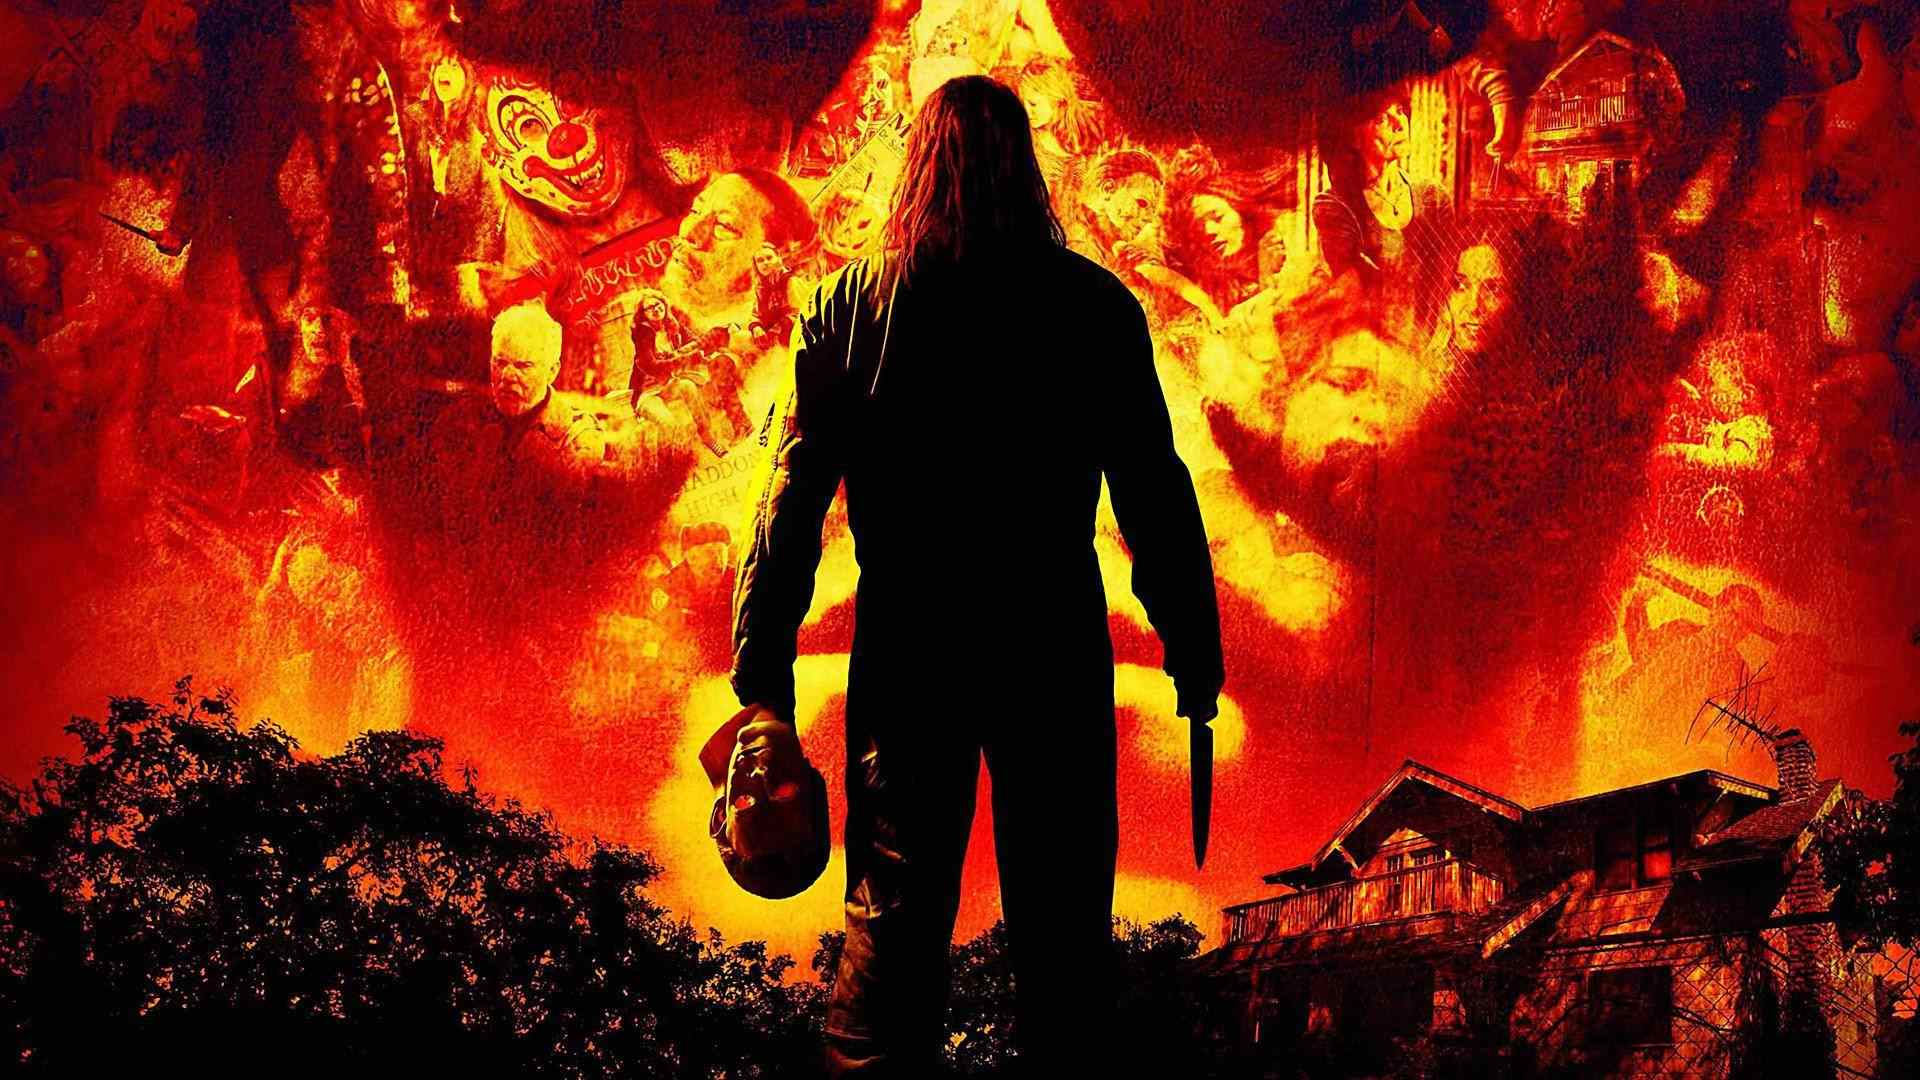 michael myers in the poster for the 2007 rob zombie halloween movie.